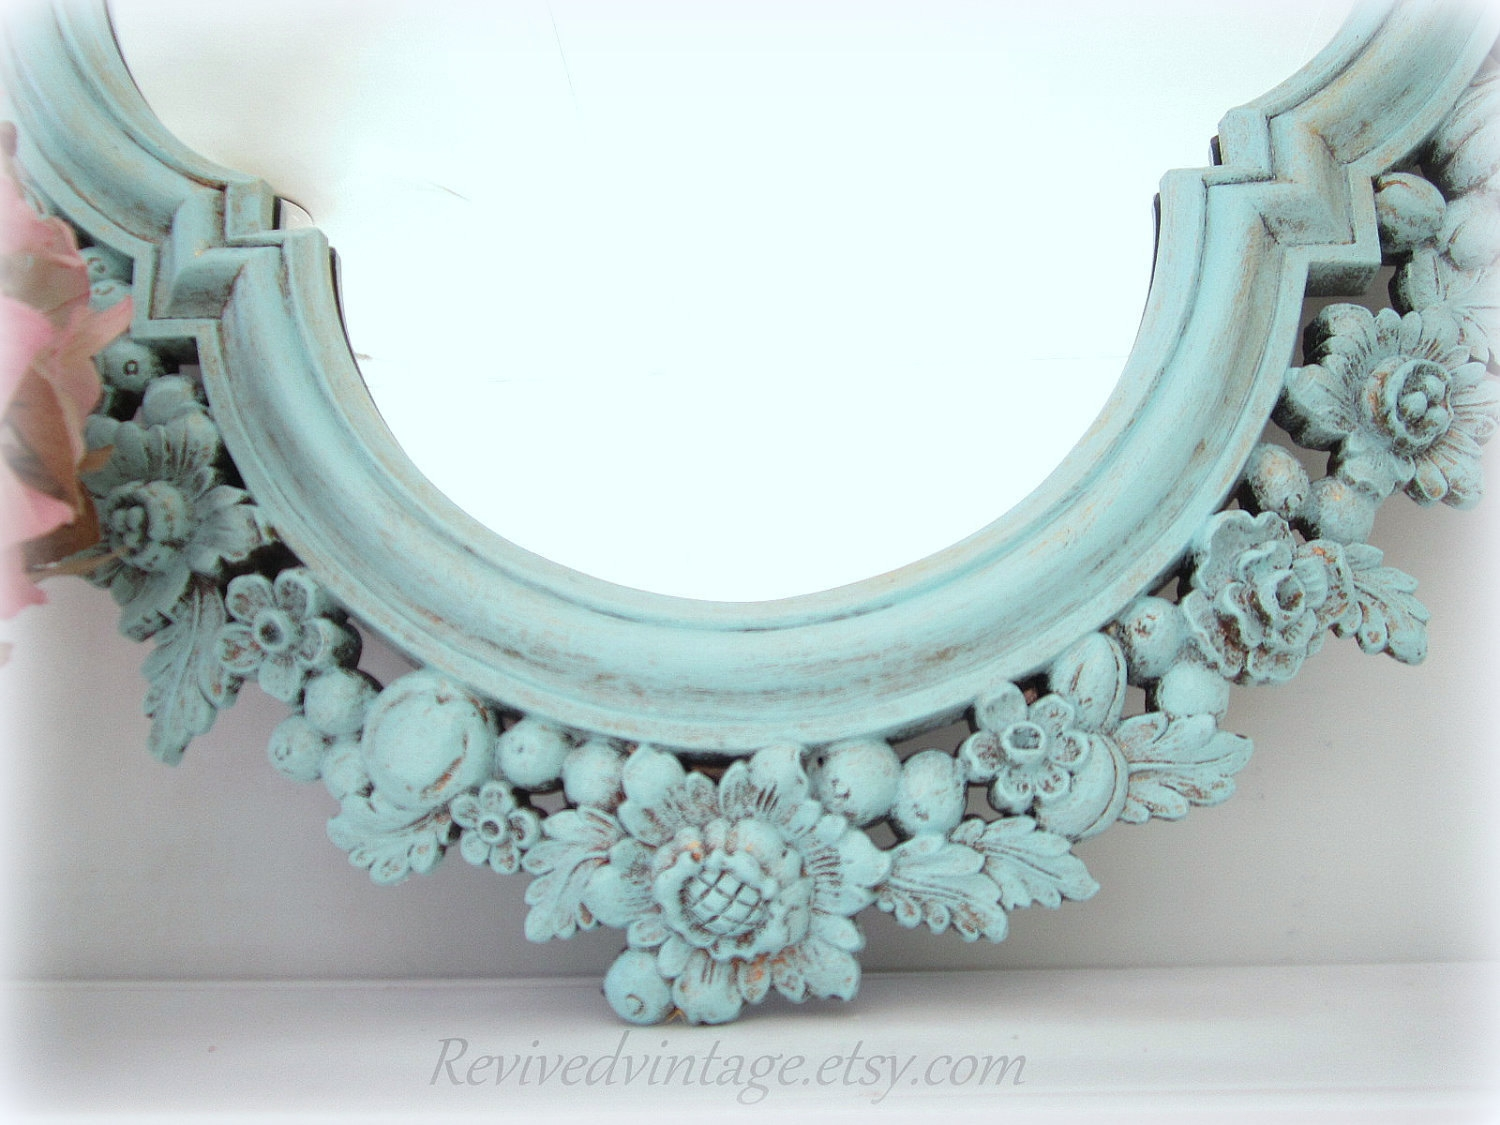 Decorative Vintage Mirrors For Sale Large Mirror Shab Chic Within Large Vintage Mirrors For Sale (Image 6 of 15)